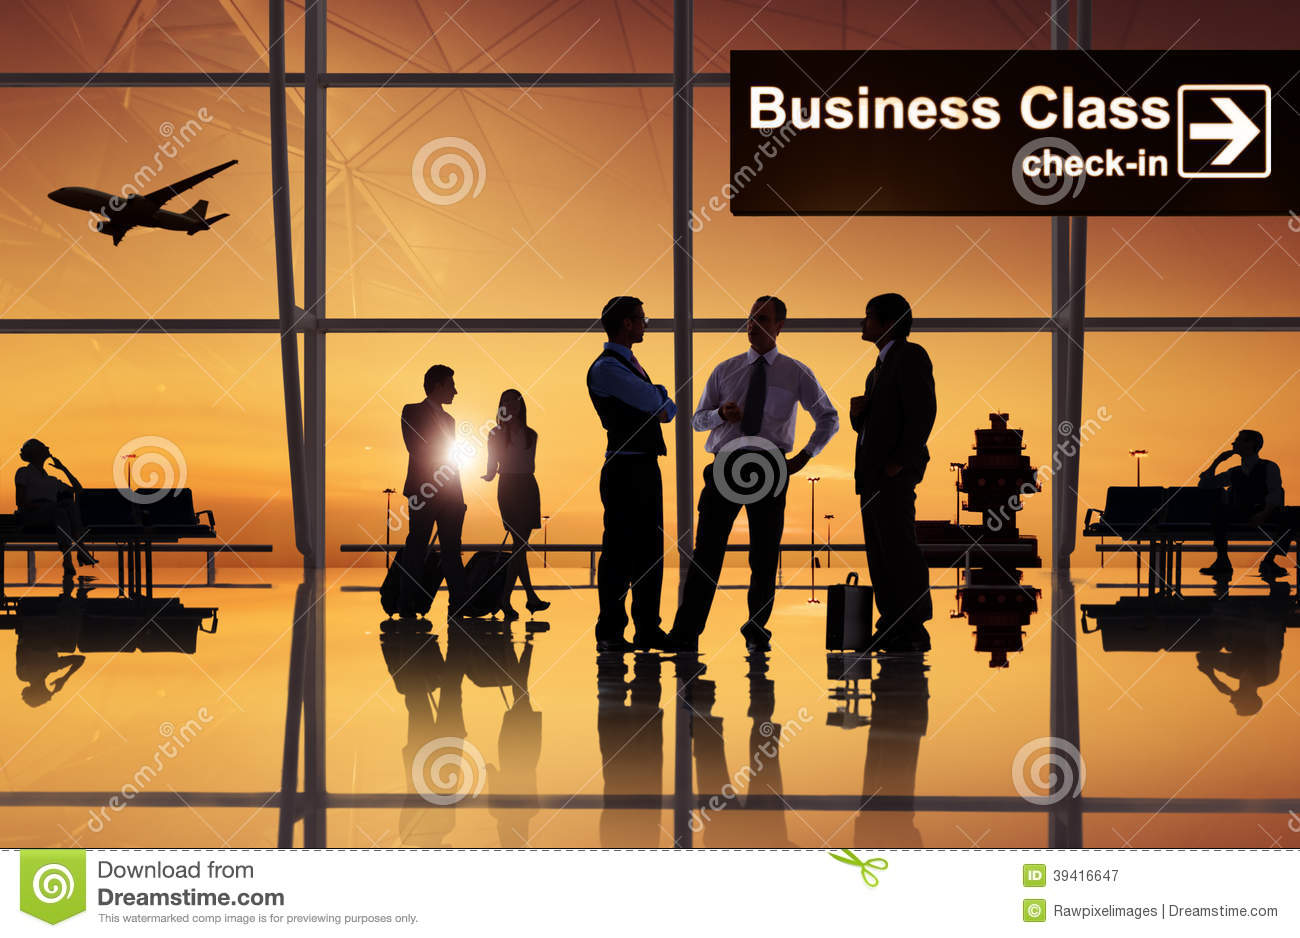 Free Images Traveling People Airport Bridge Business: Group Of Business People In The Airport Stock Image